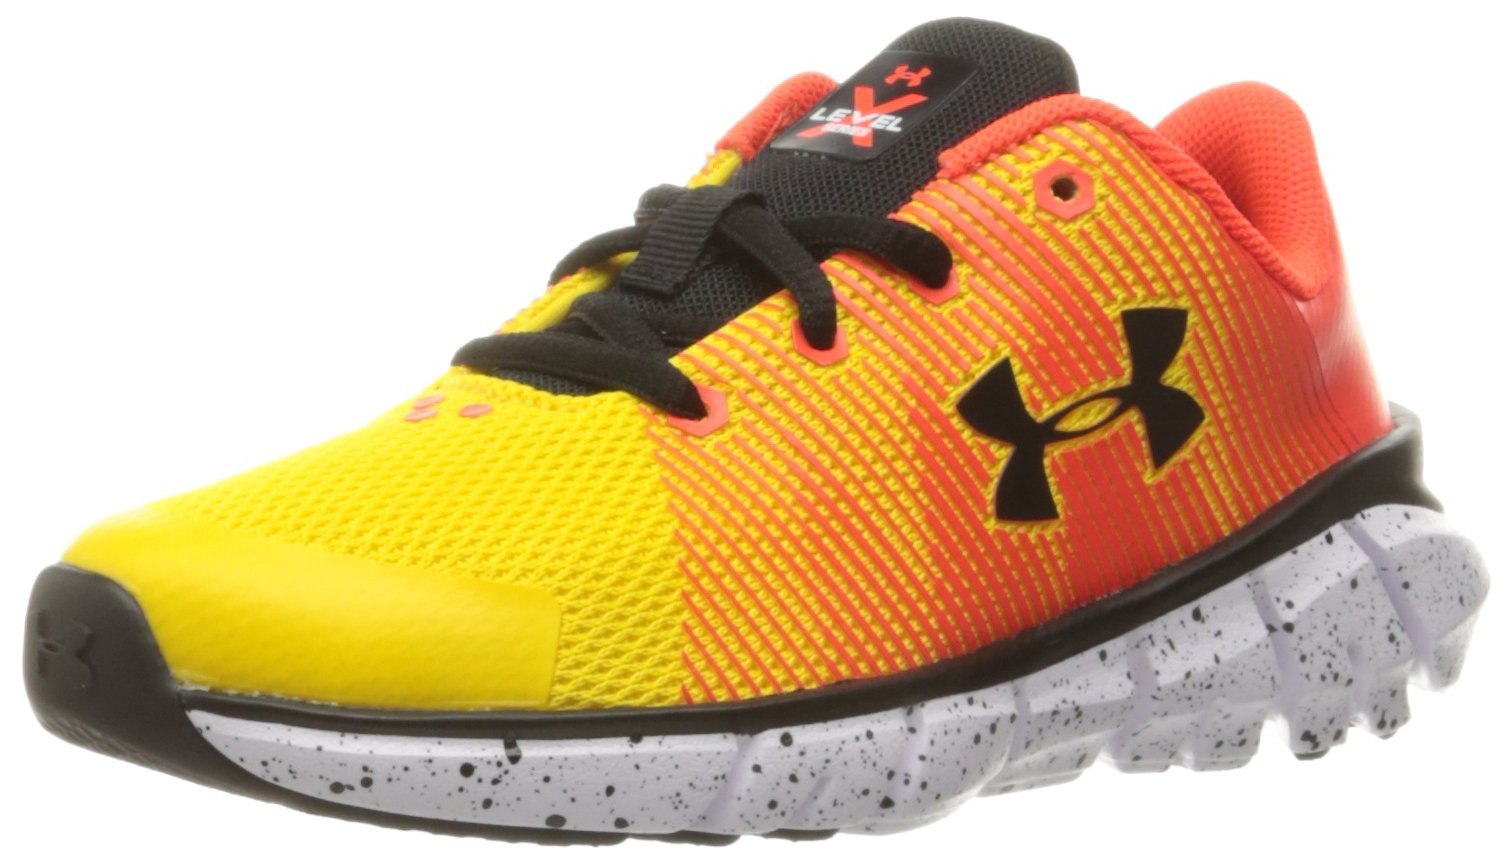 Under Armour Men's Pre School X Level Scramjet Sneaker, Taxi (790)/Phoenix Fire, 2.5